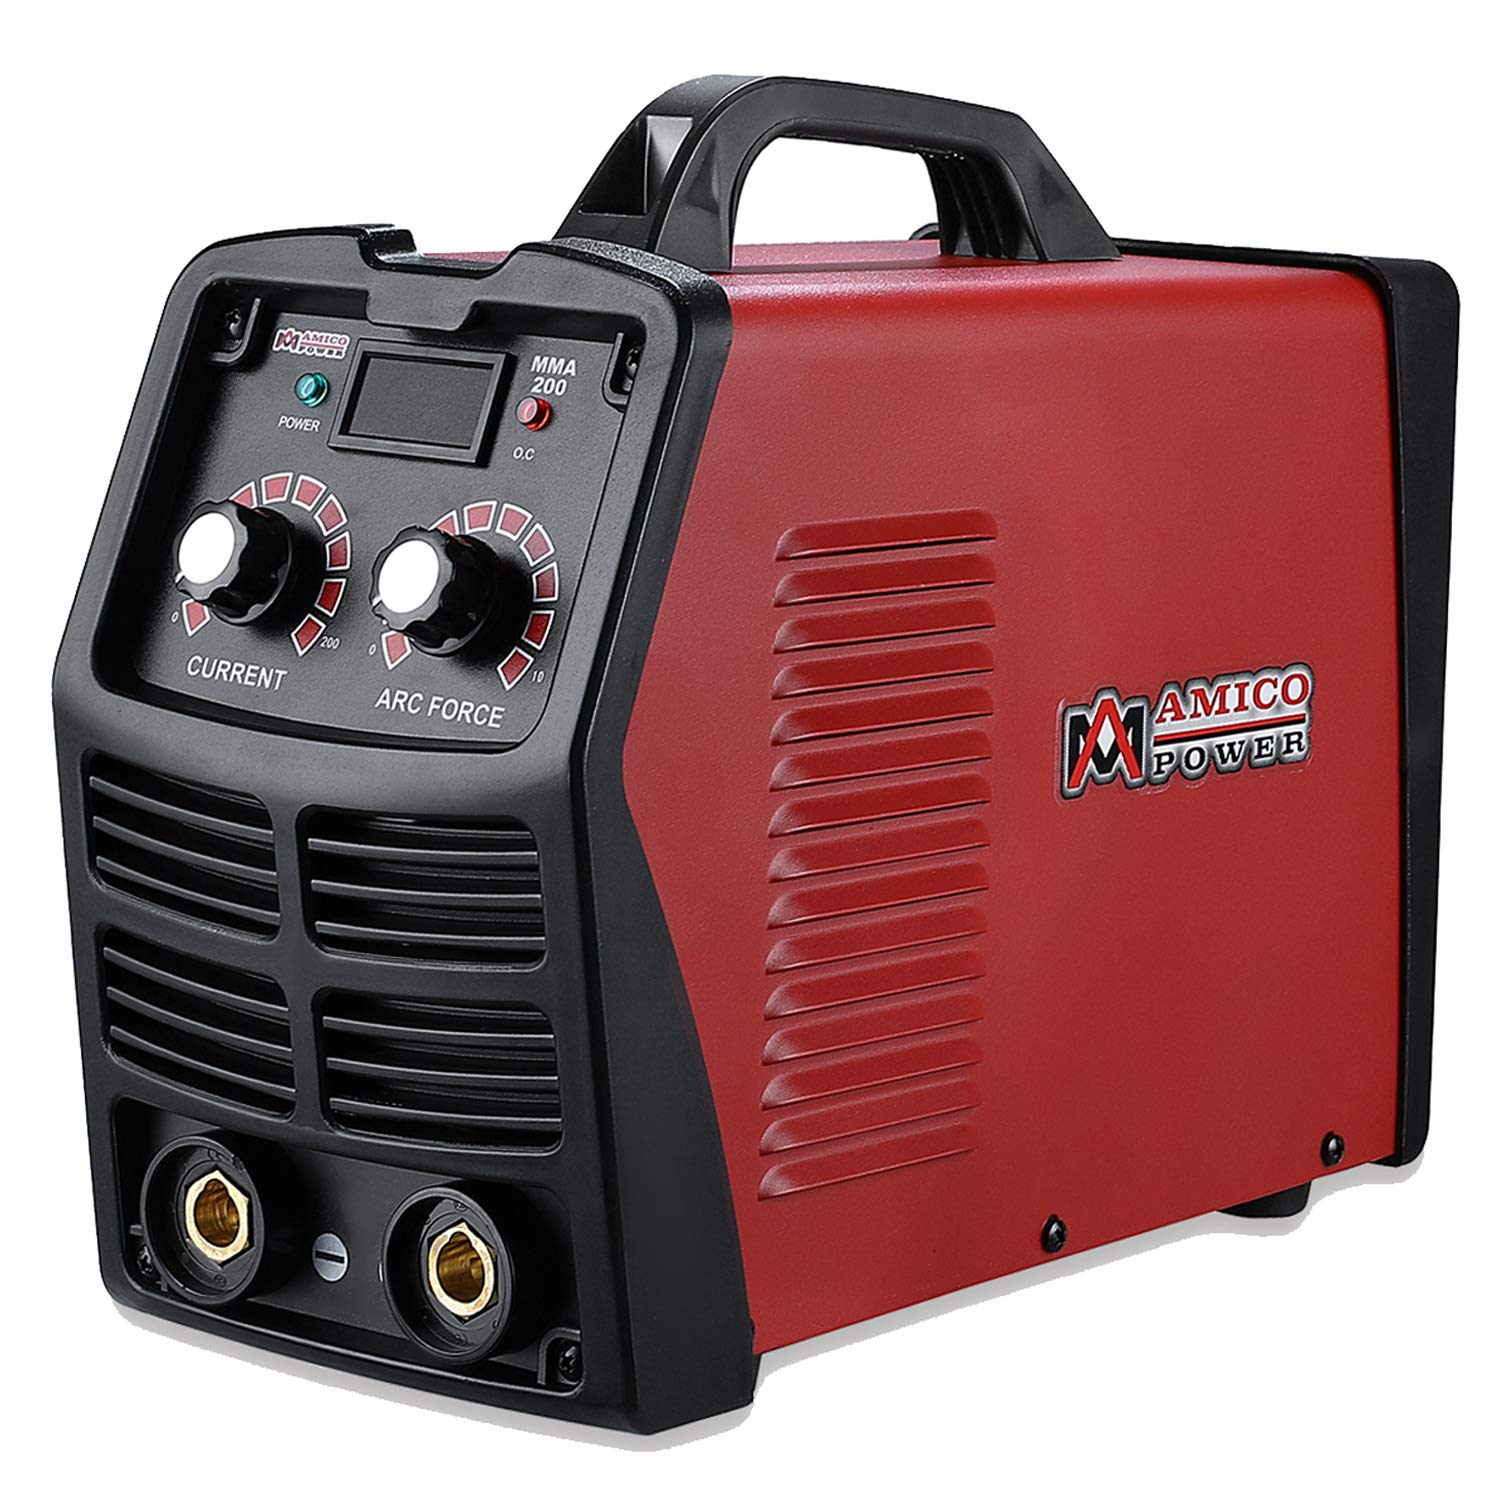 MMA-200, 200 Amp Stick Arc DC Welder, IGBT Digital Inverter 110V & 230V Welding Machine. - - Amazon.com